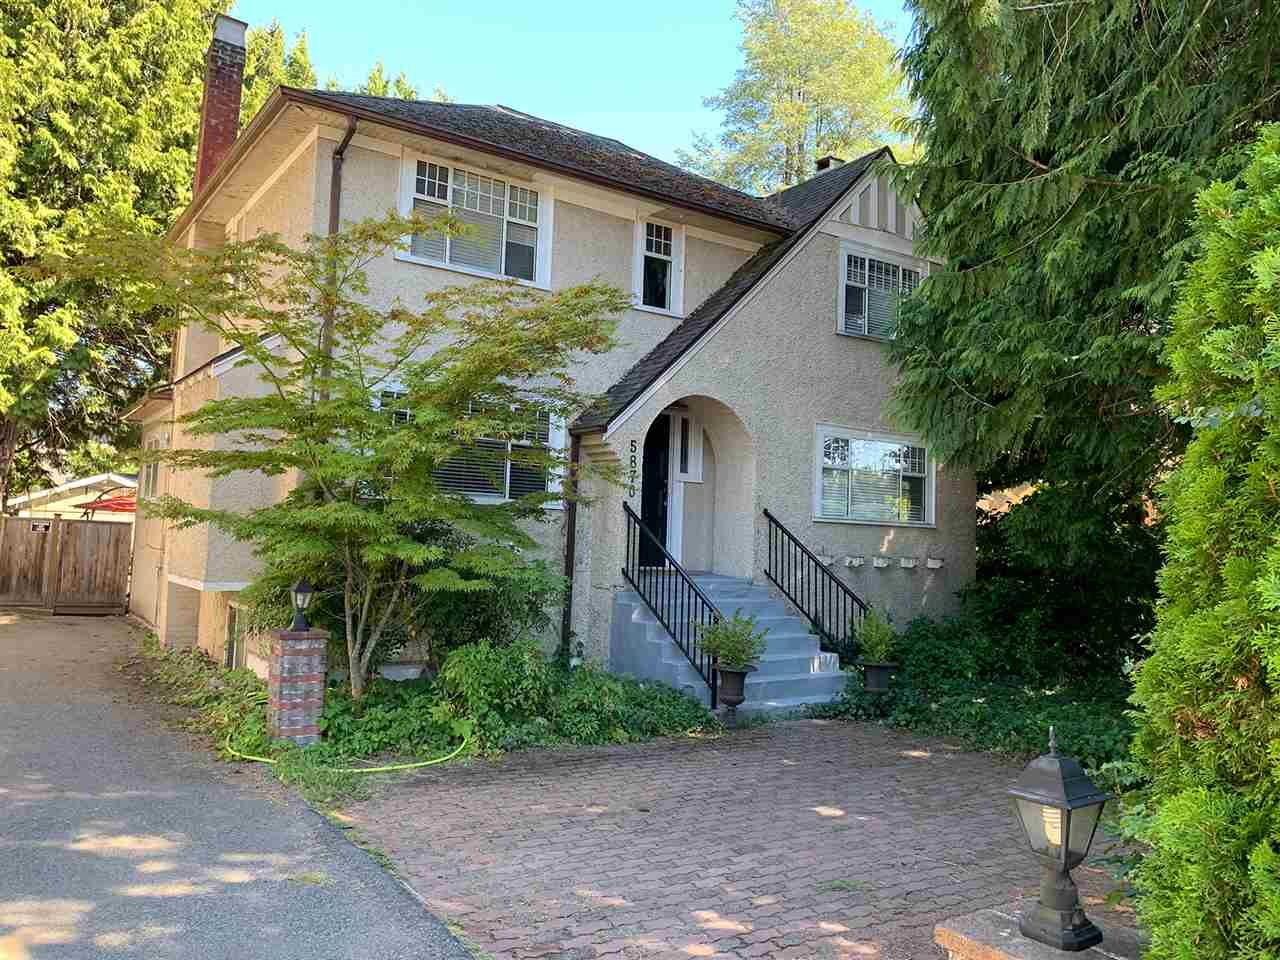 Main Photo: 5870 GRANVILLE Street in Vancouver: South Granville House for sale (Vancouver West)  : MLS®# R2509697